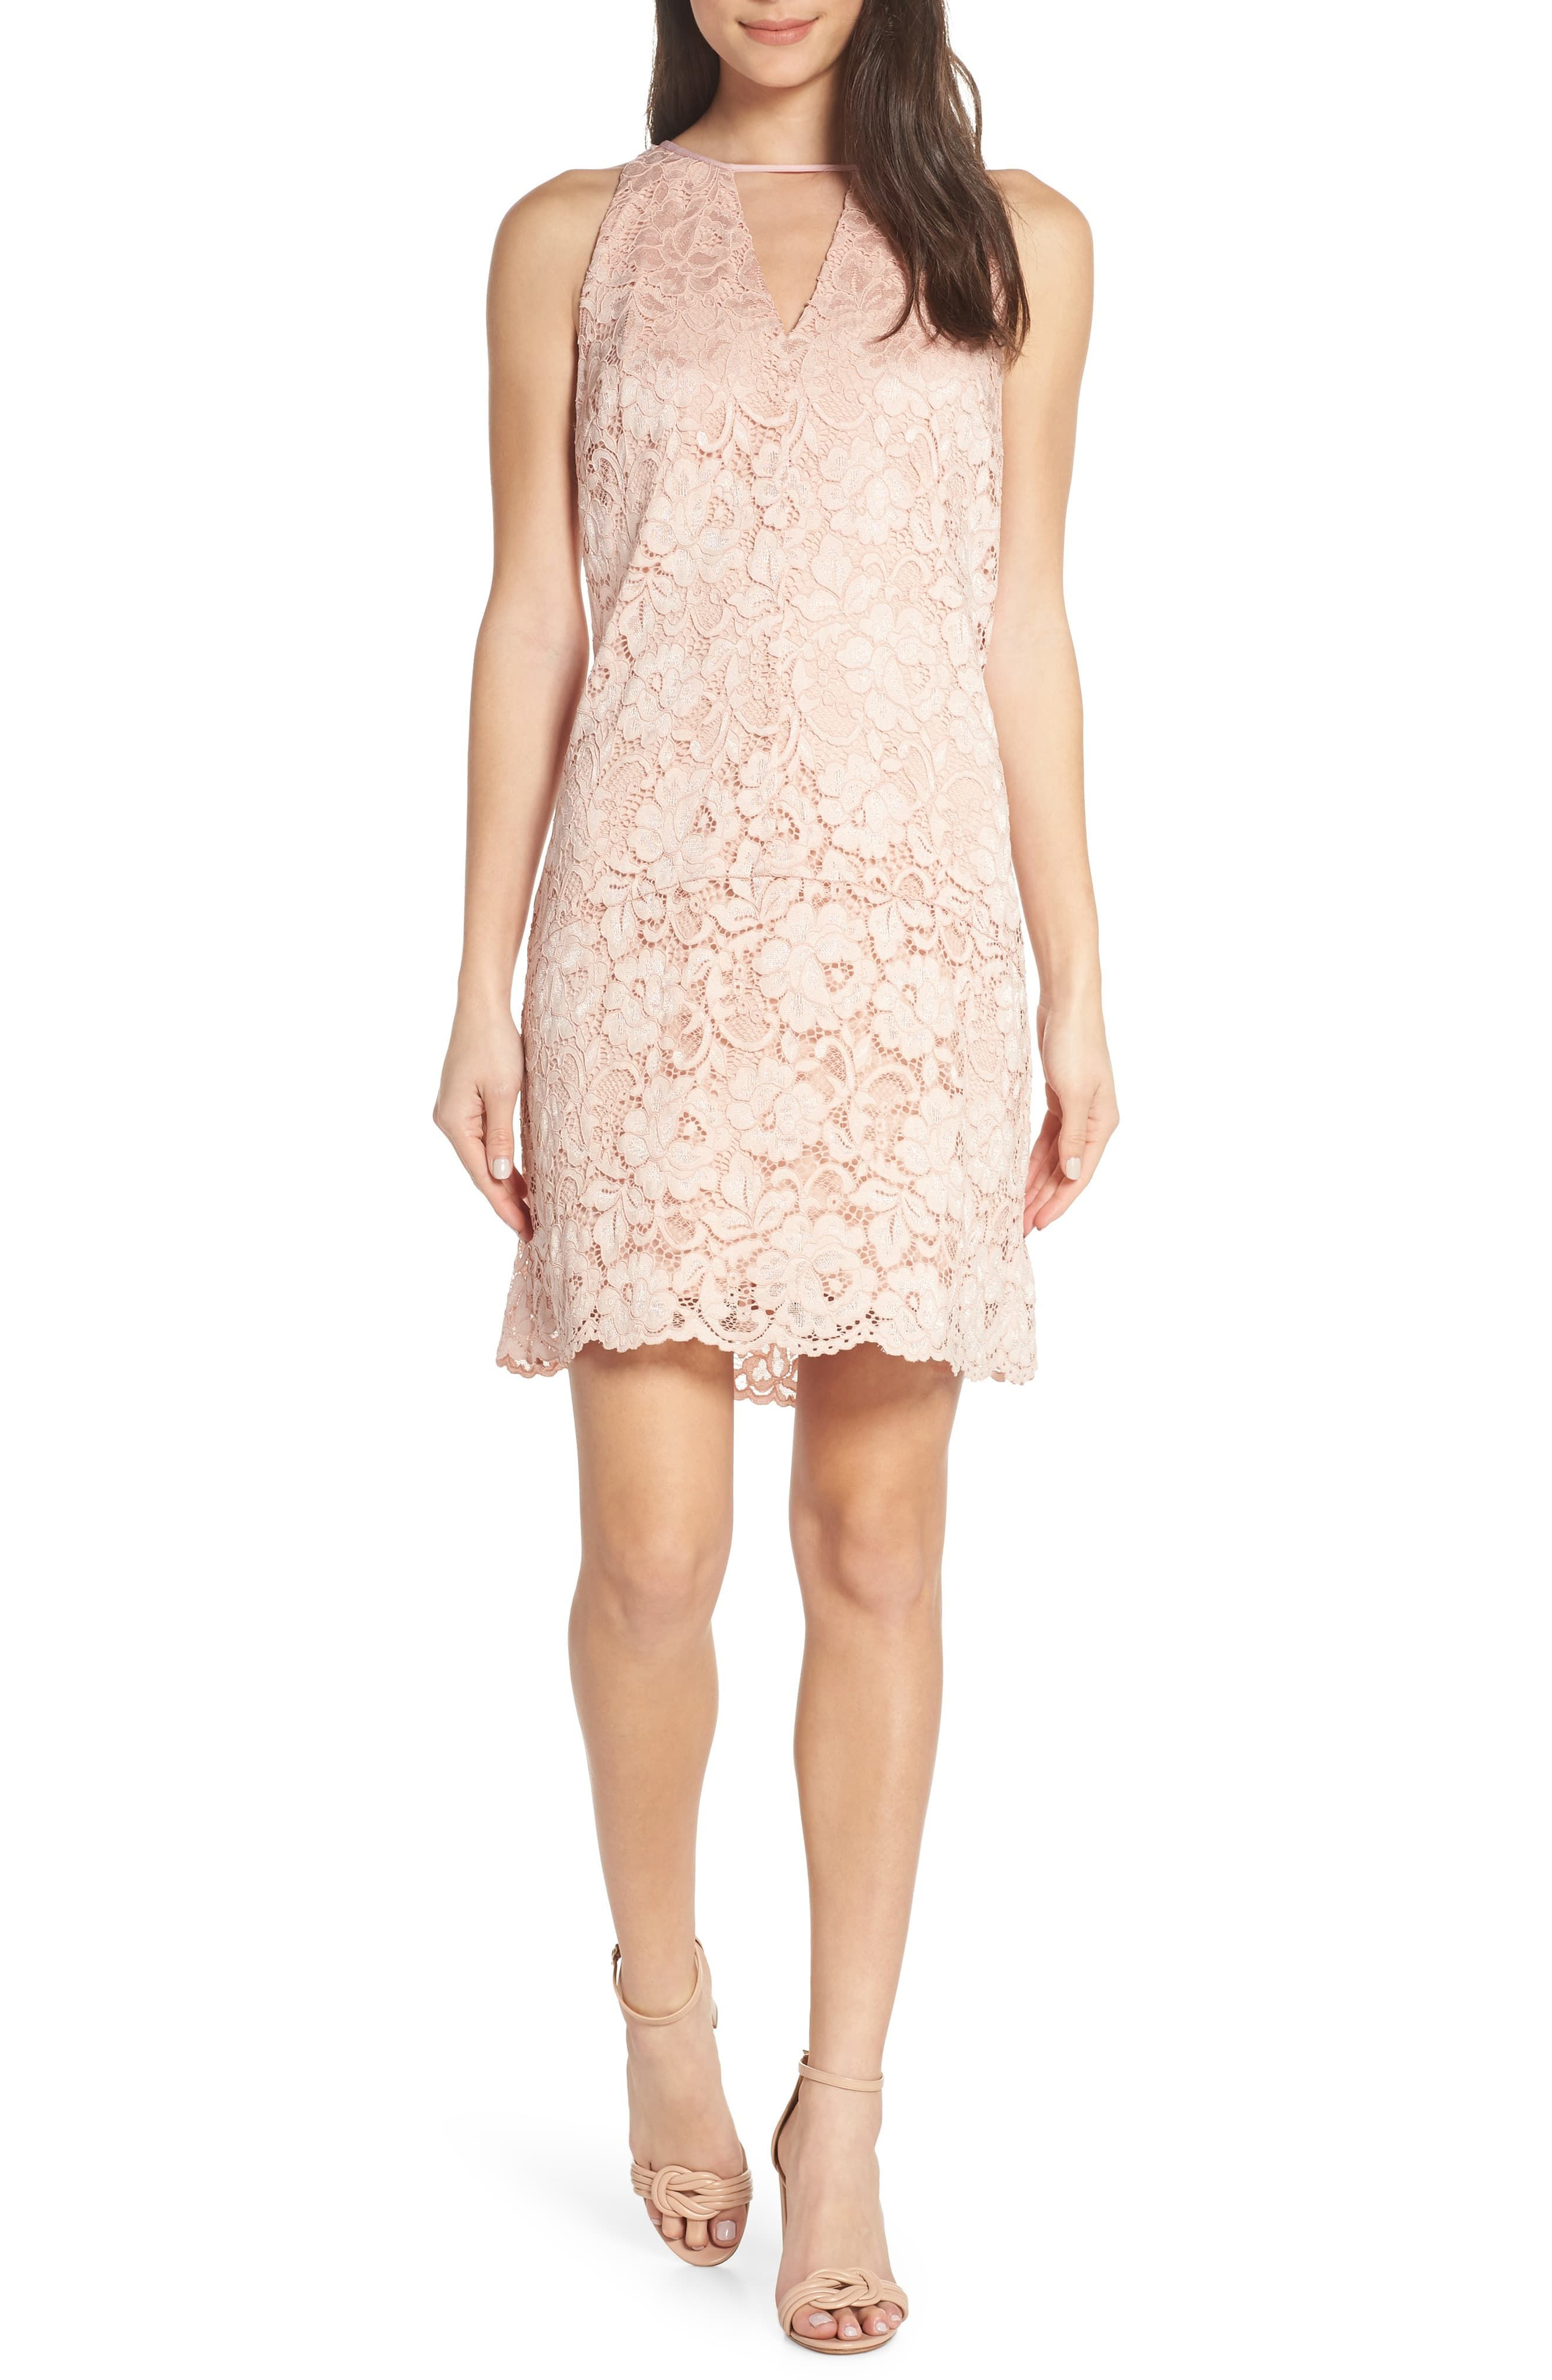 d03a1cf5 Sam Edelman Lace Shift Dress in 2019 | Products | Dresses, Nordstrom ...